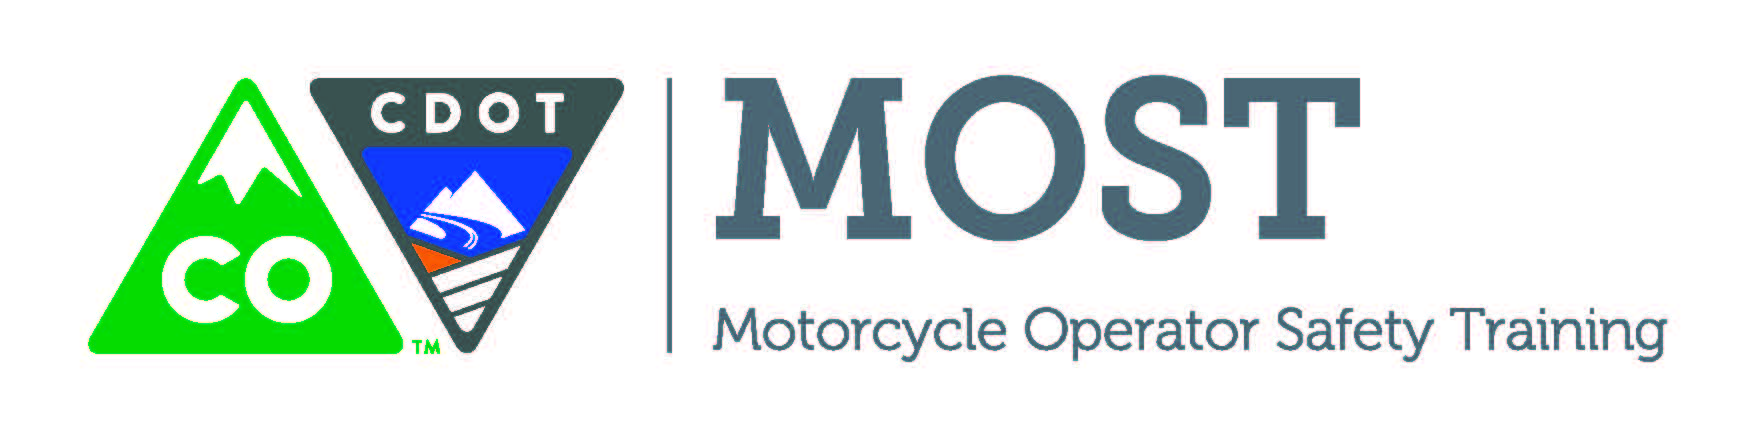 Motorcycle Operator Safety Training Logo detail image